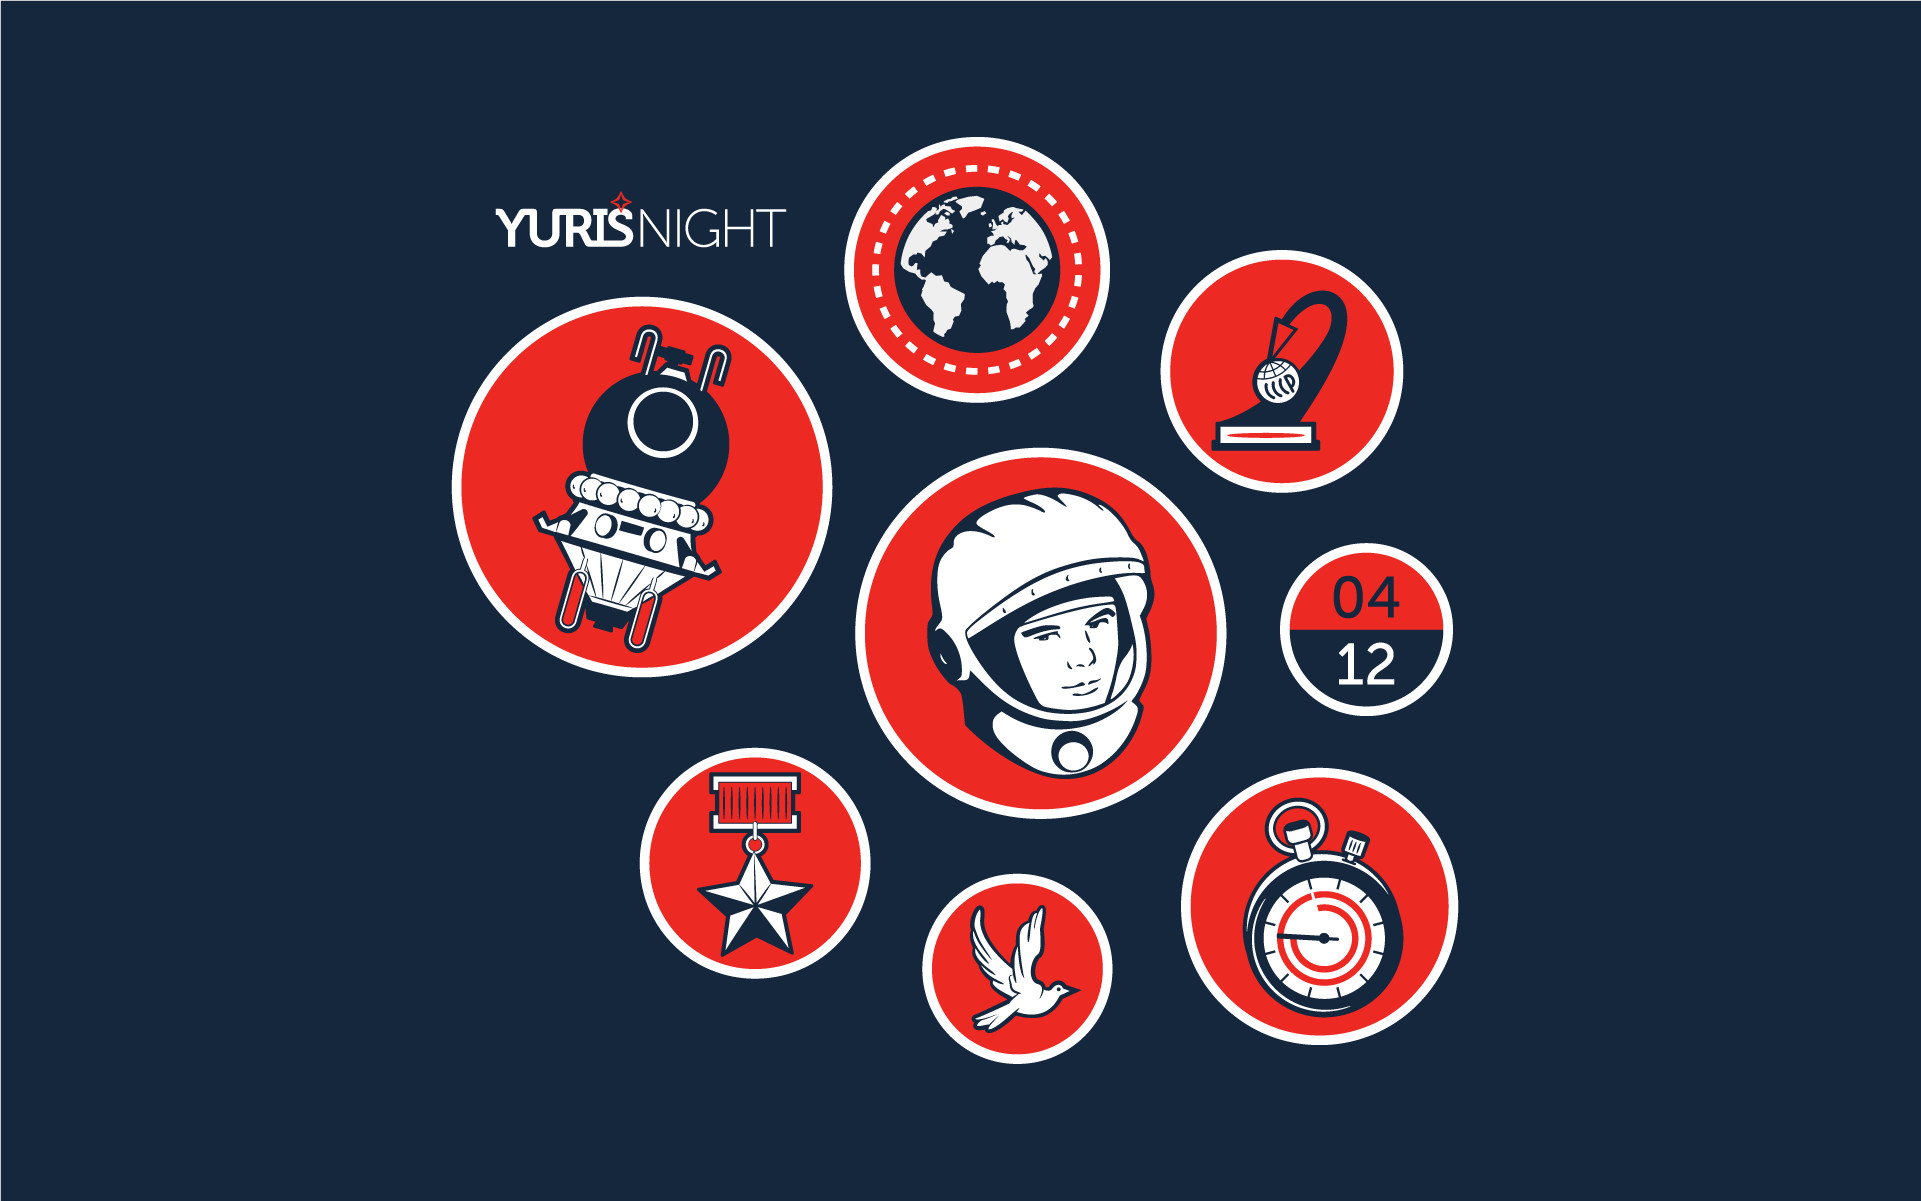 Explanation of elements, clockwise, starting with the Vostok under the  Yuri's Night logo: